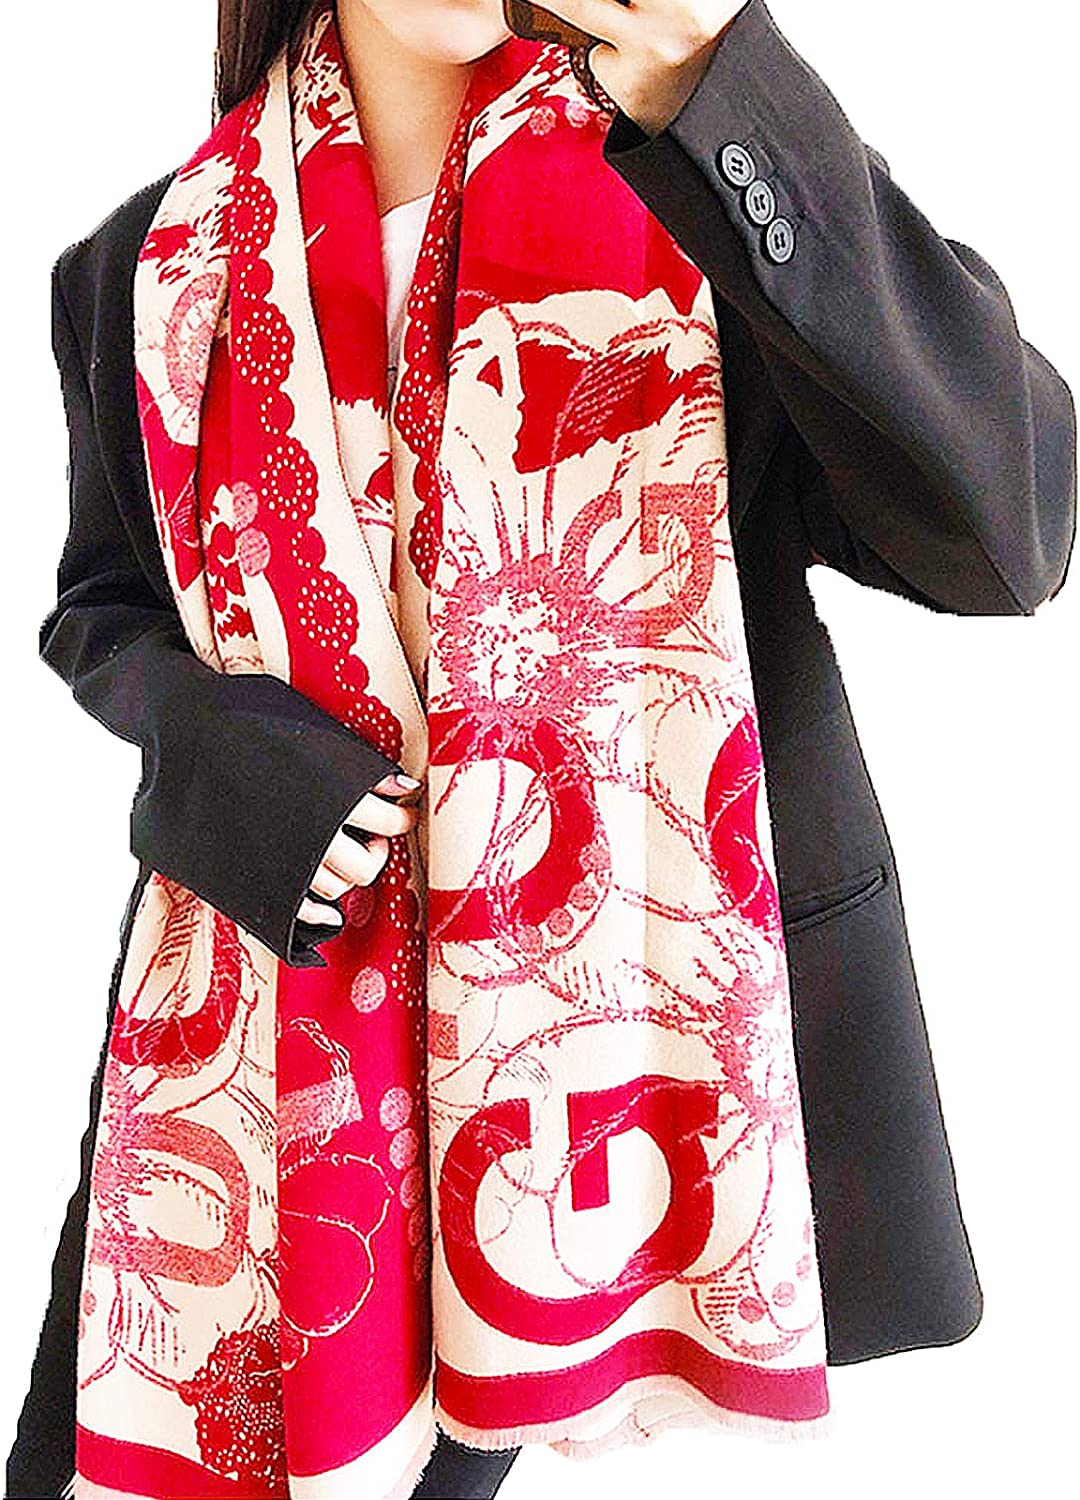 Ink style women's fashion scarf is thicker and warmer. Can be used as a shawl.…